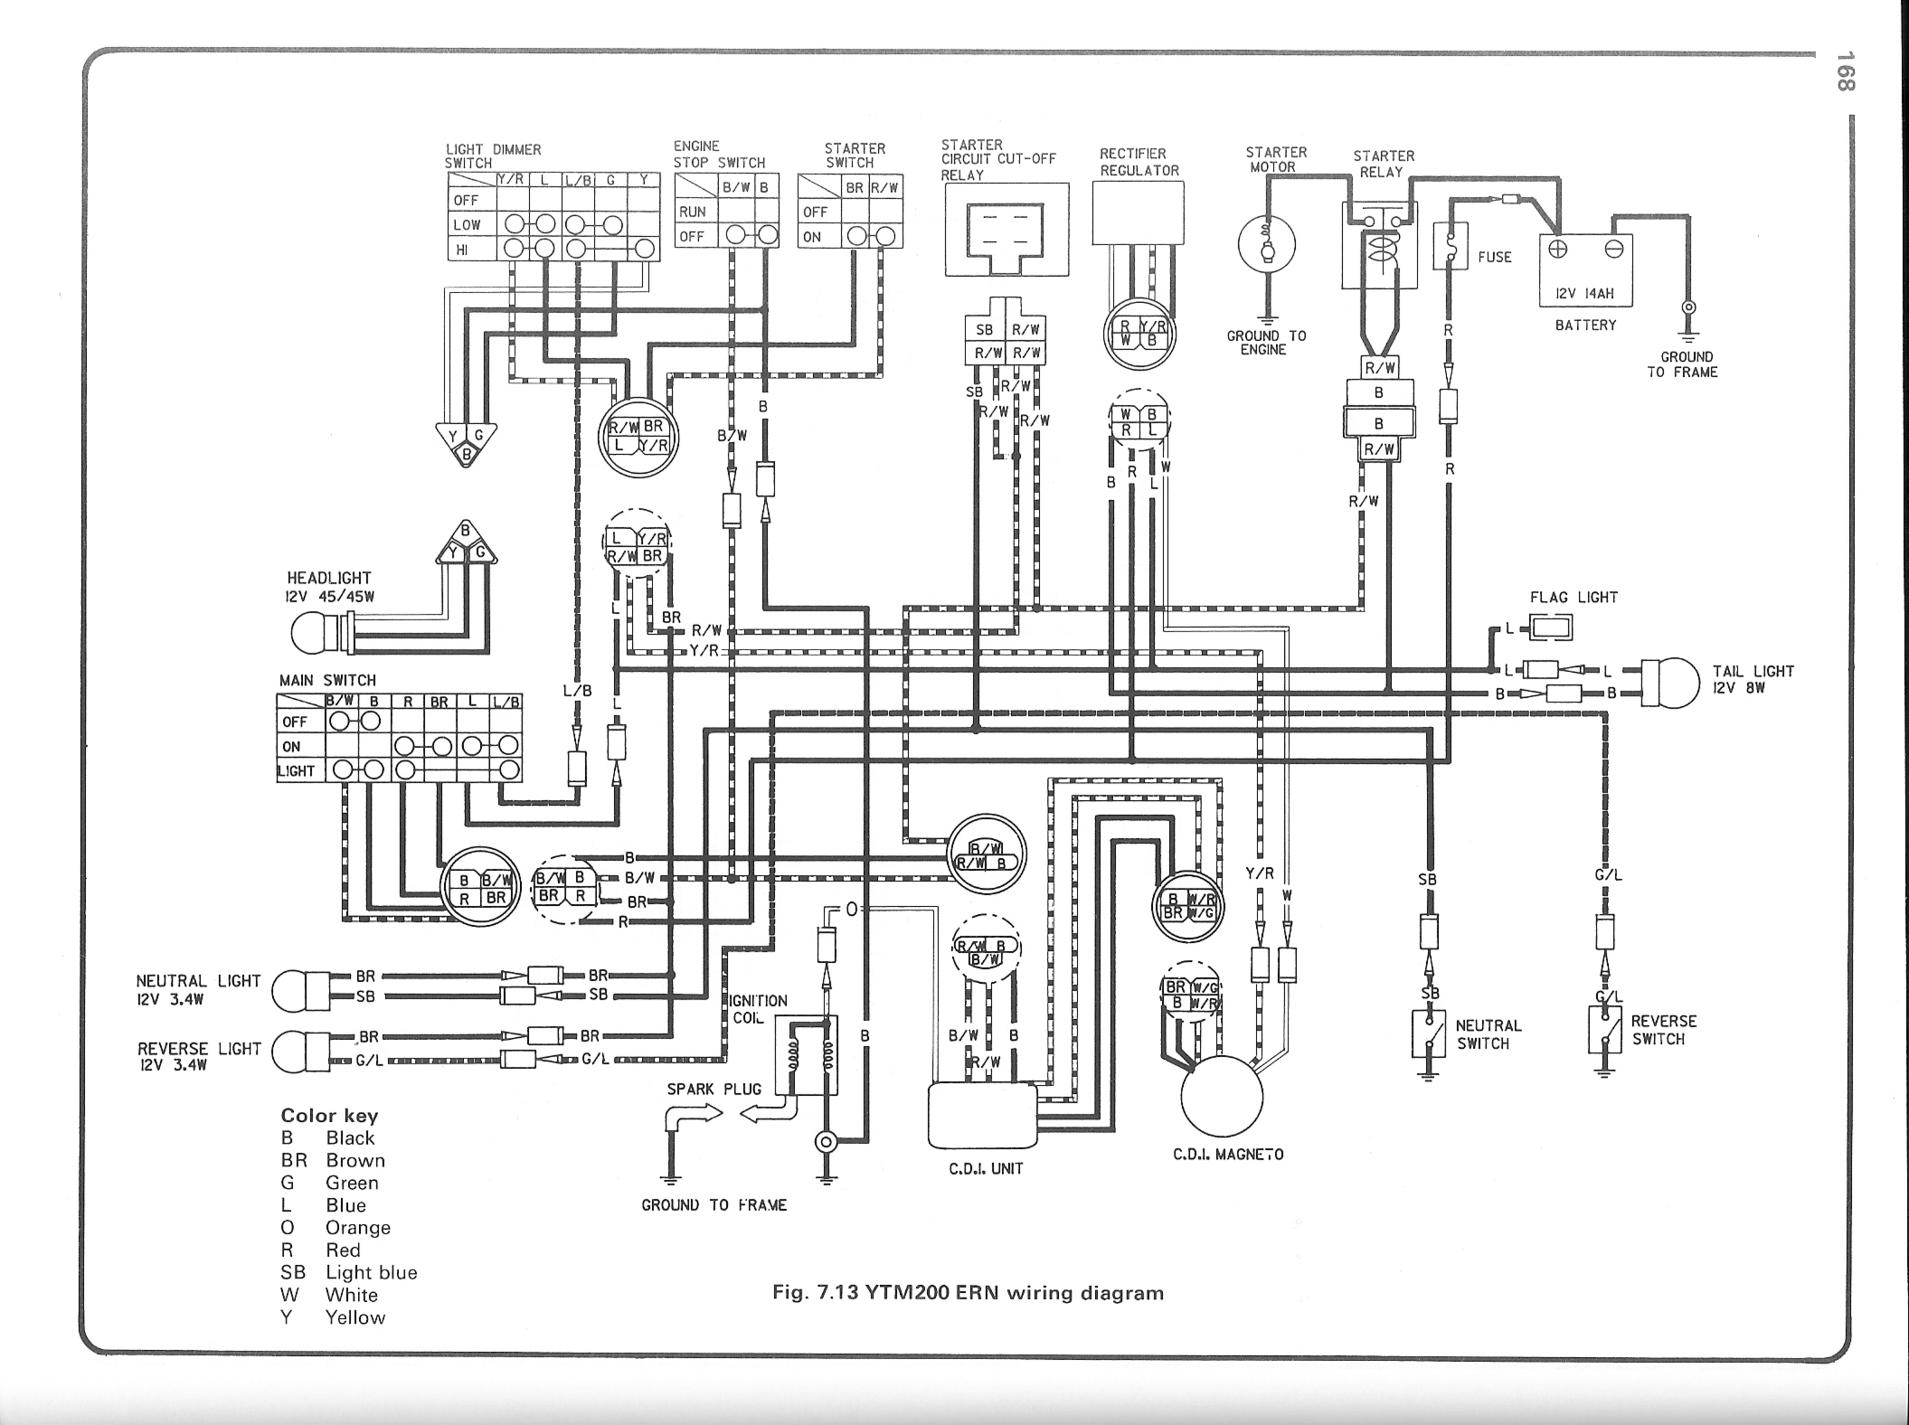 boss plow wiring diagram boss discover your wiring diagram 1987 polaris trail boss 250 wiring diagram